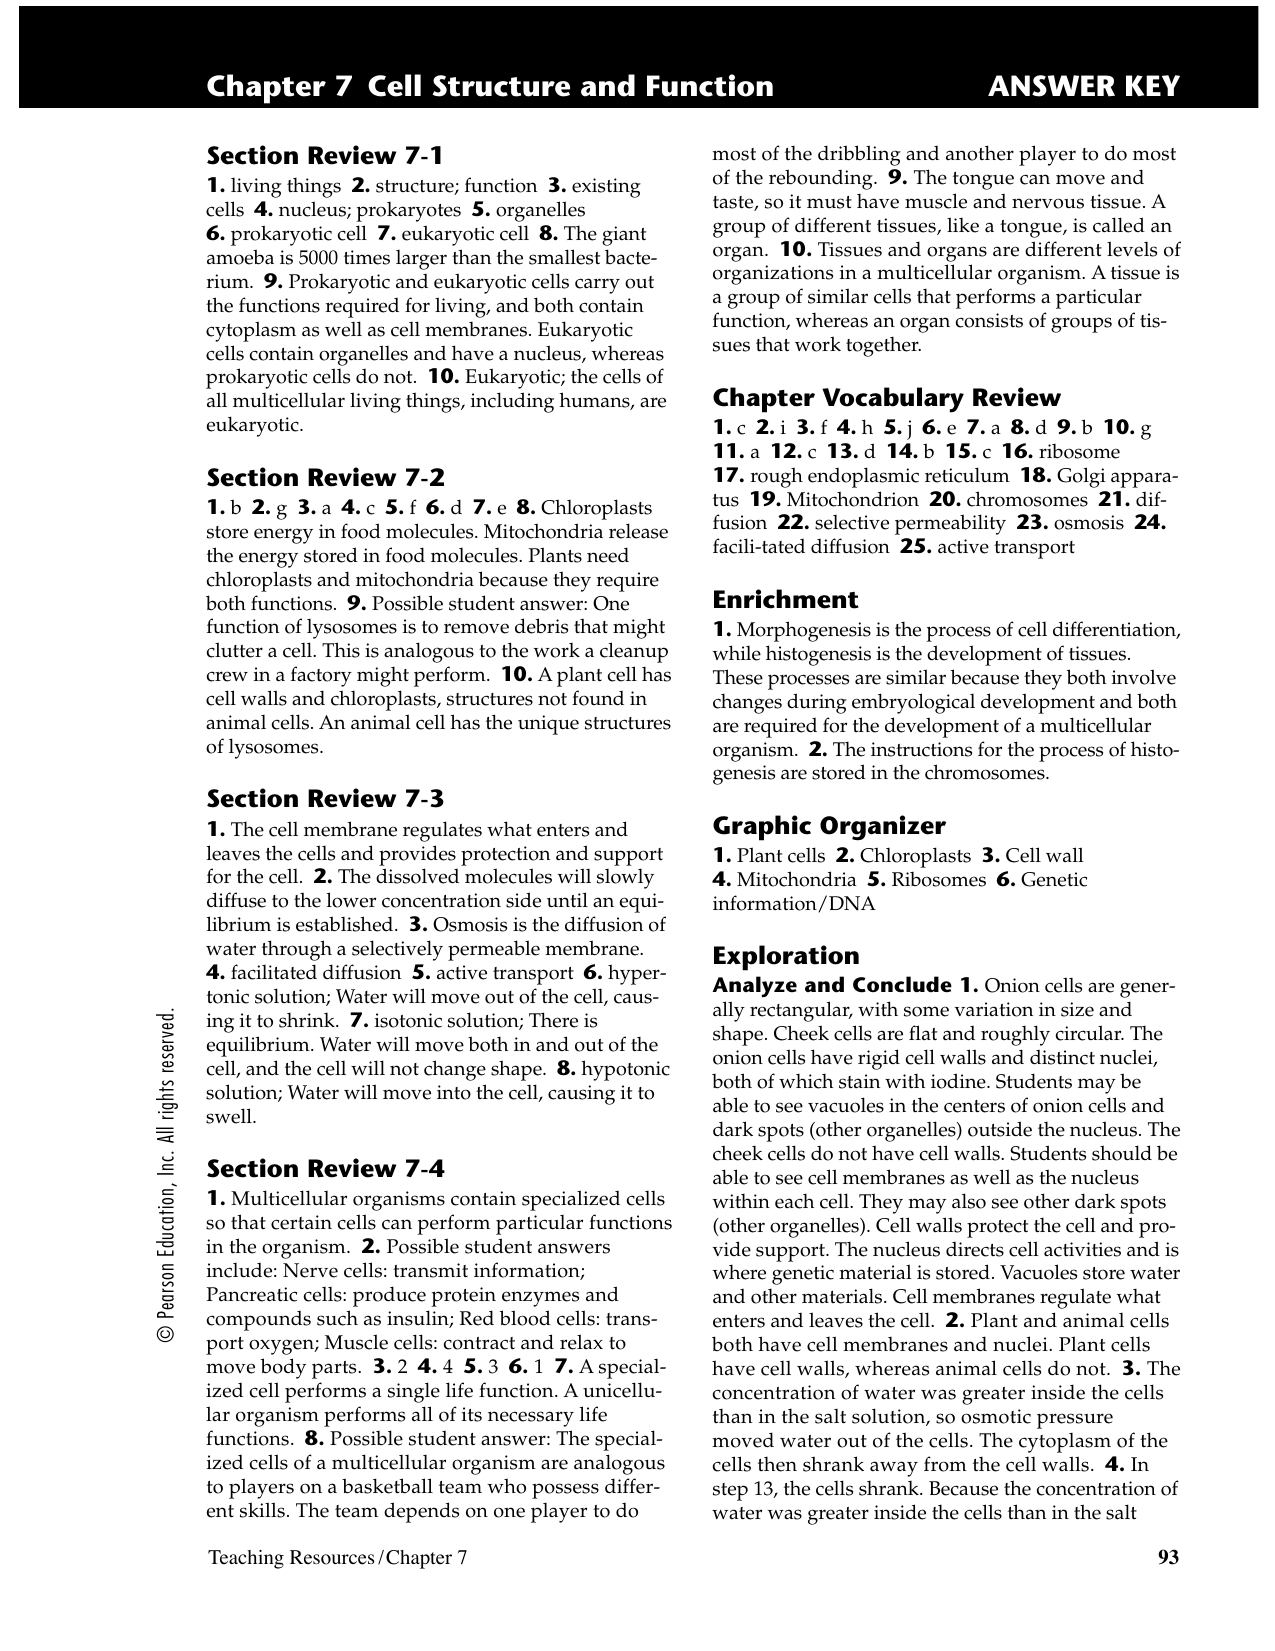 Chapter 7 Cell Structure And Function Answer Key And Lesson 7 2 Cell Structure Worksheet Answers